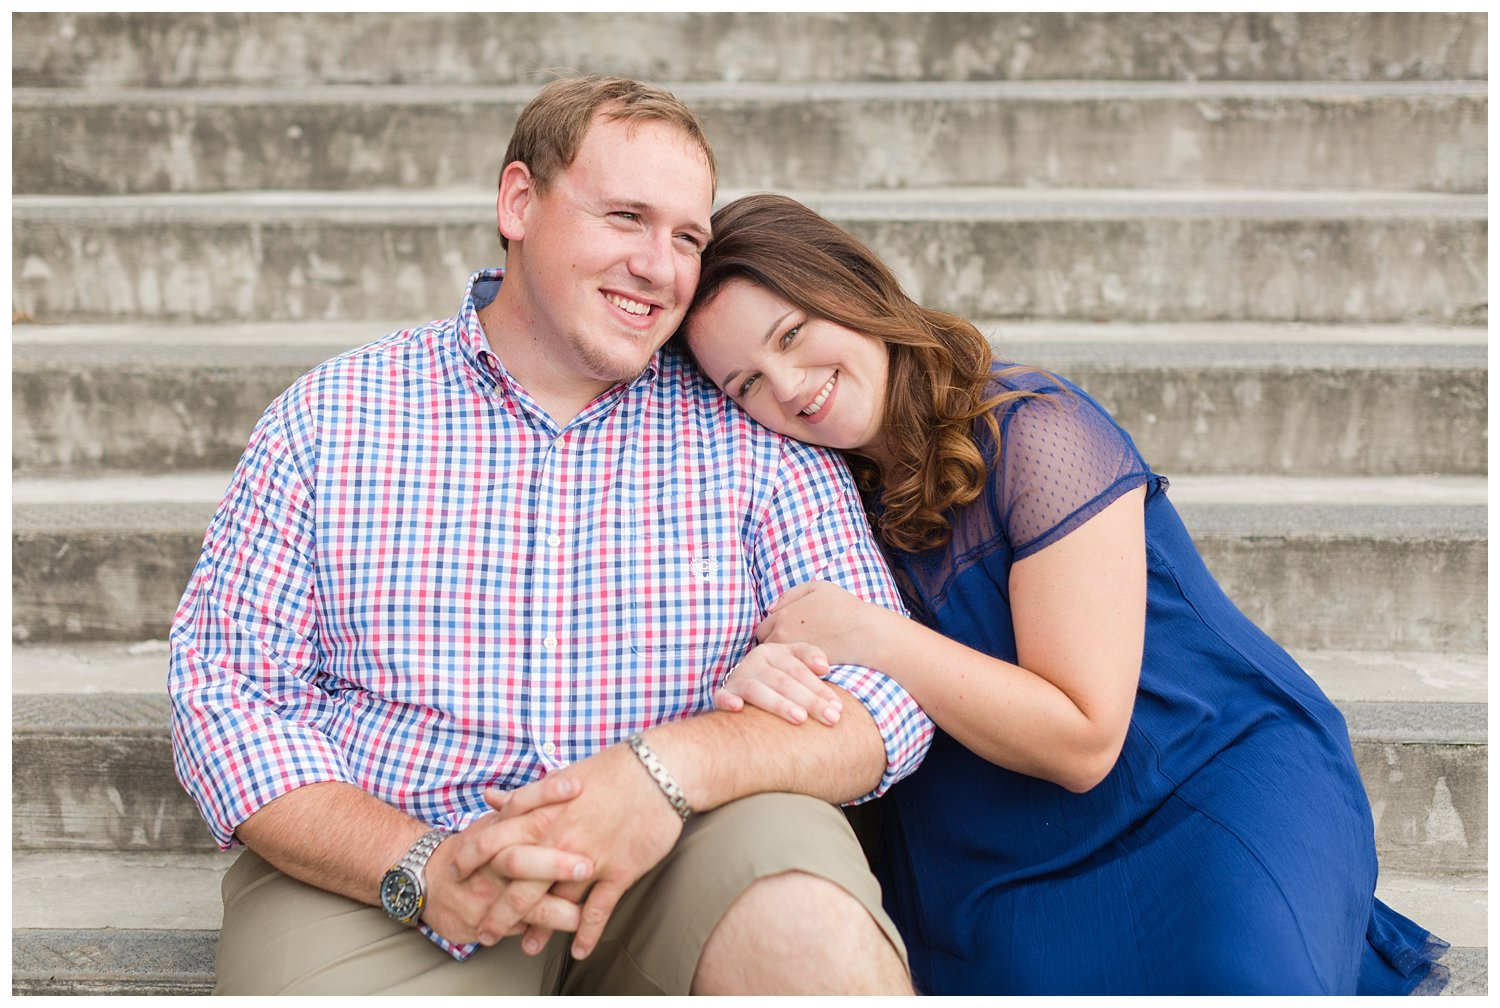 elovephotos old town alexandria engagement session_0774.jpg